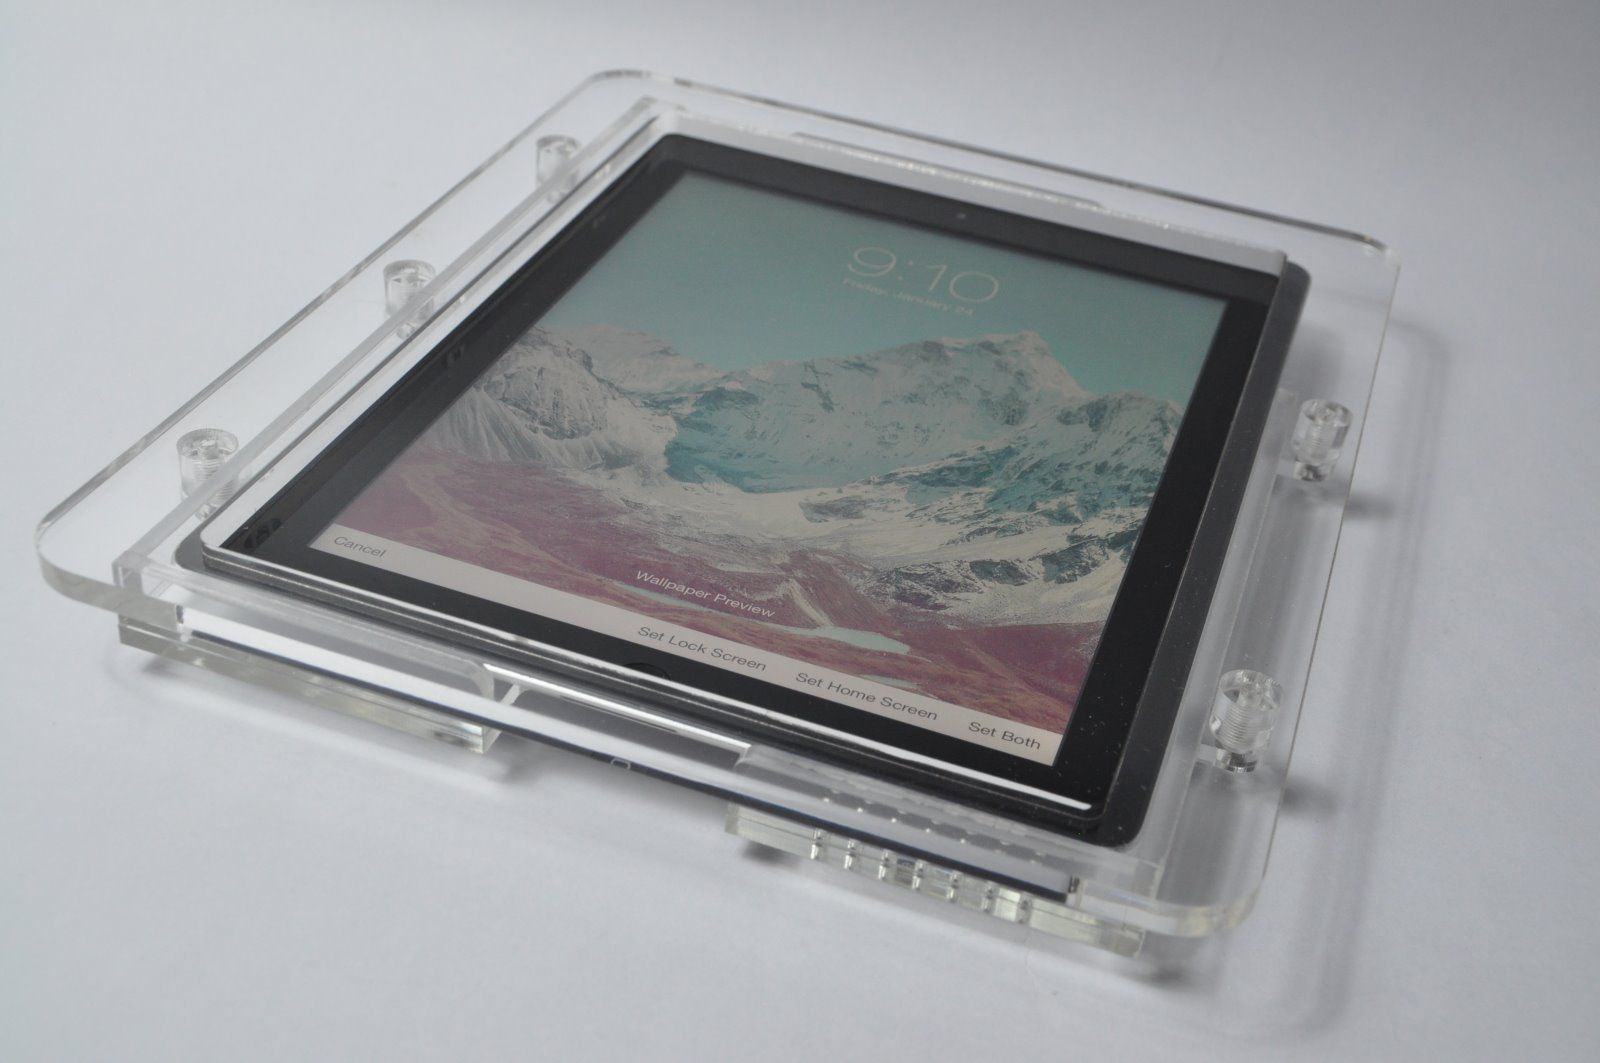 New Ipad Acrylic Enclosure Made Of 8 Mm Acrylic Material Old Ones Was 5 Mm Clear Acrylic Tablet Mount Acrylic